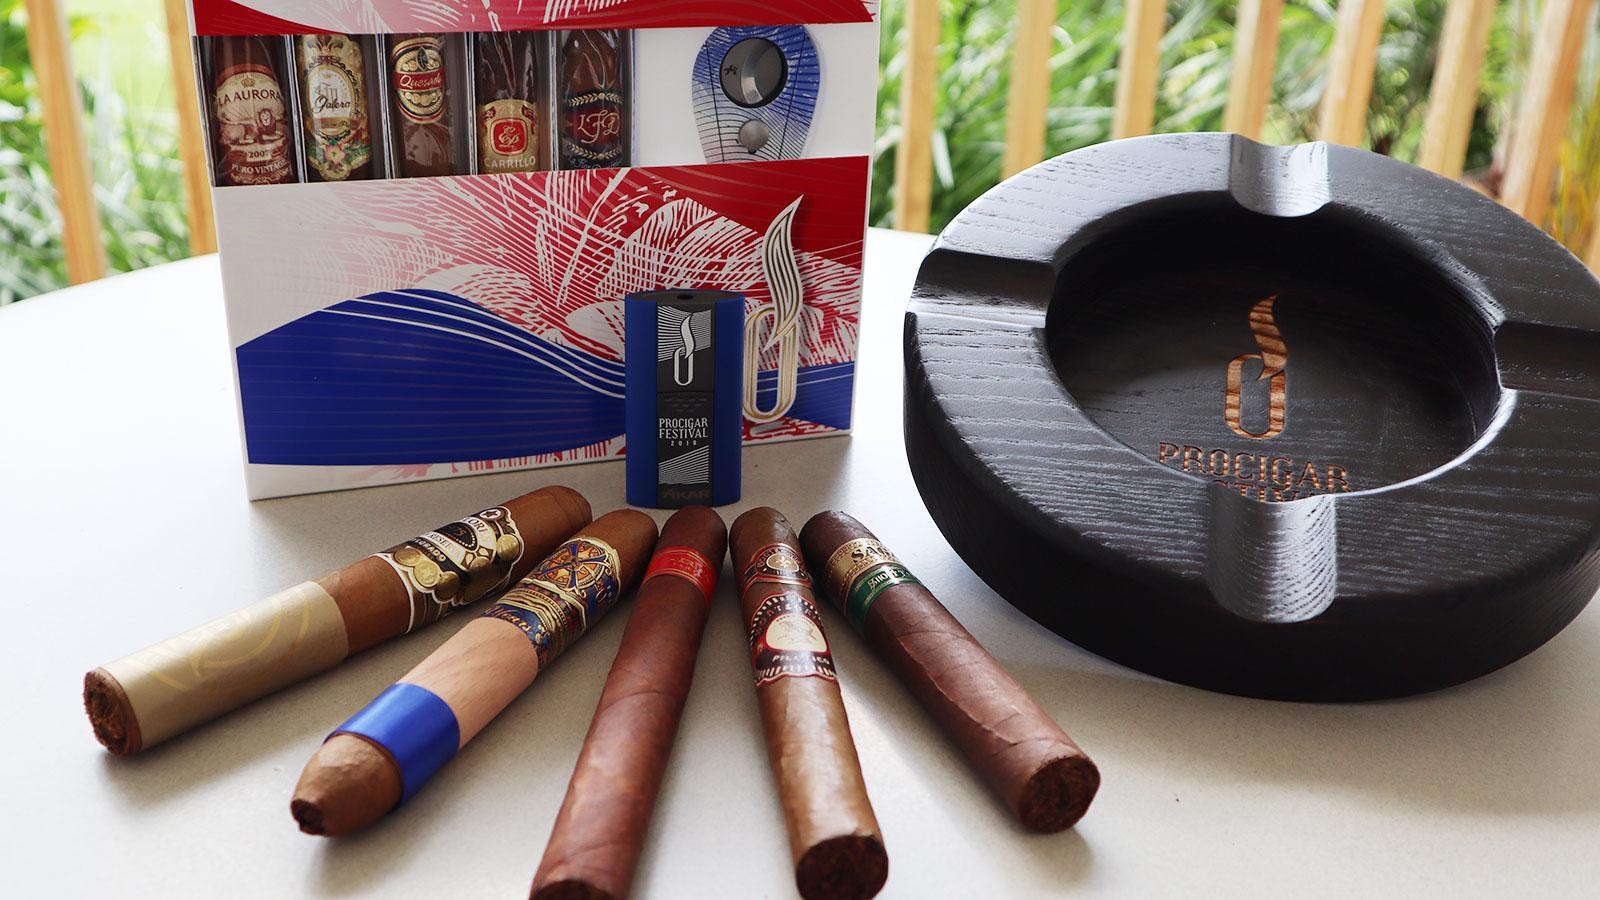 Procigar Festival 2019: What's In The Bag?